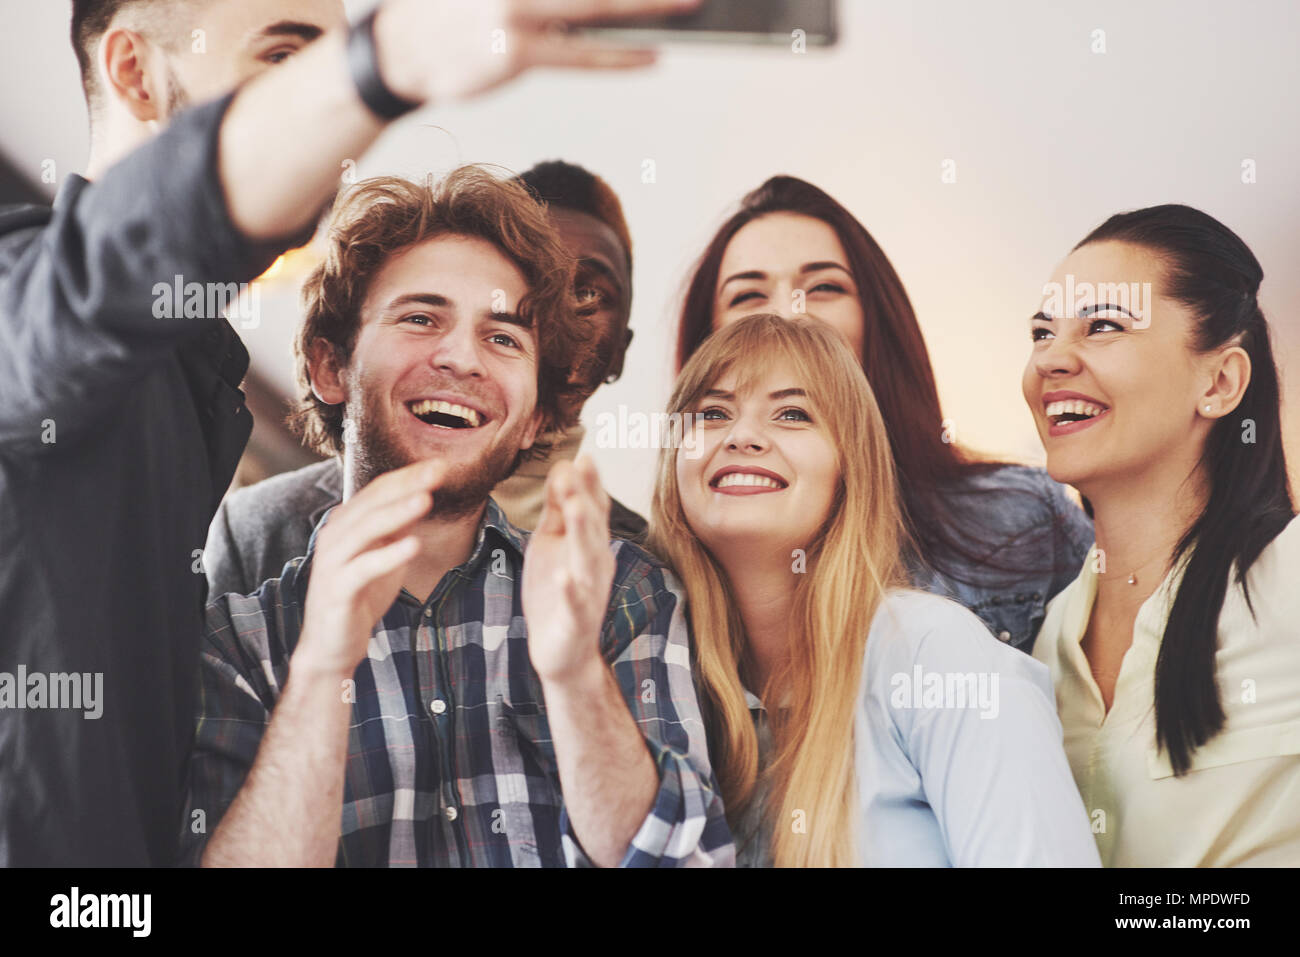 Group portrait of Cheerful old friends communicate with each other, friend posing on cafe, Urban style people having fun, Concepts about youth togetherness lifestyle. Wifi connected - Stock Image